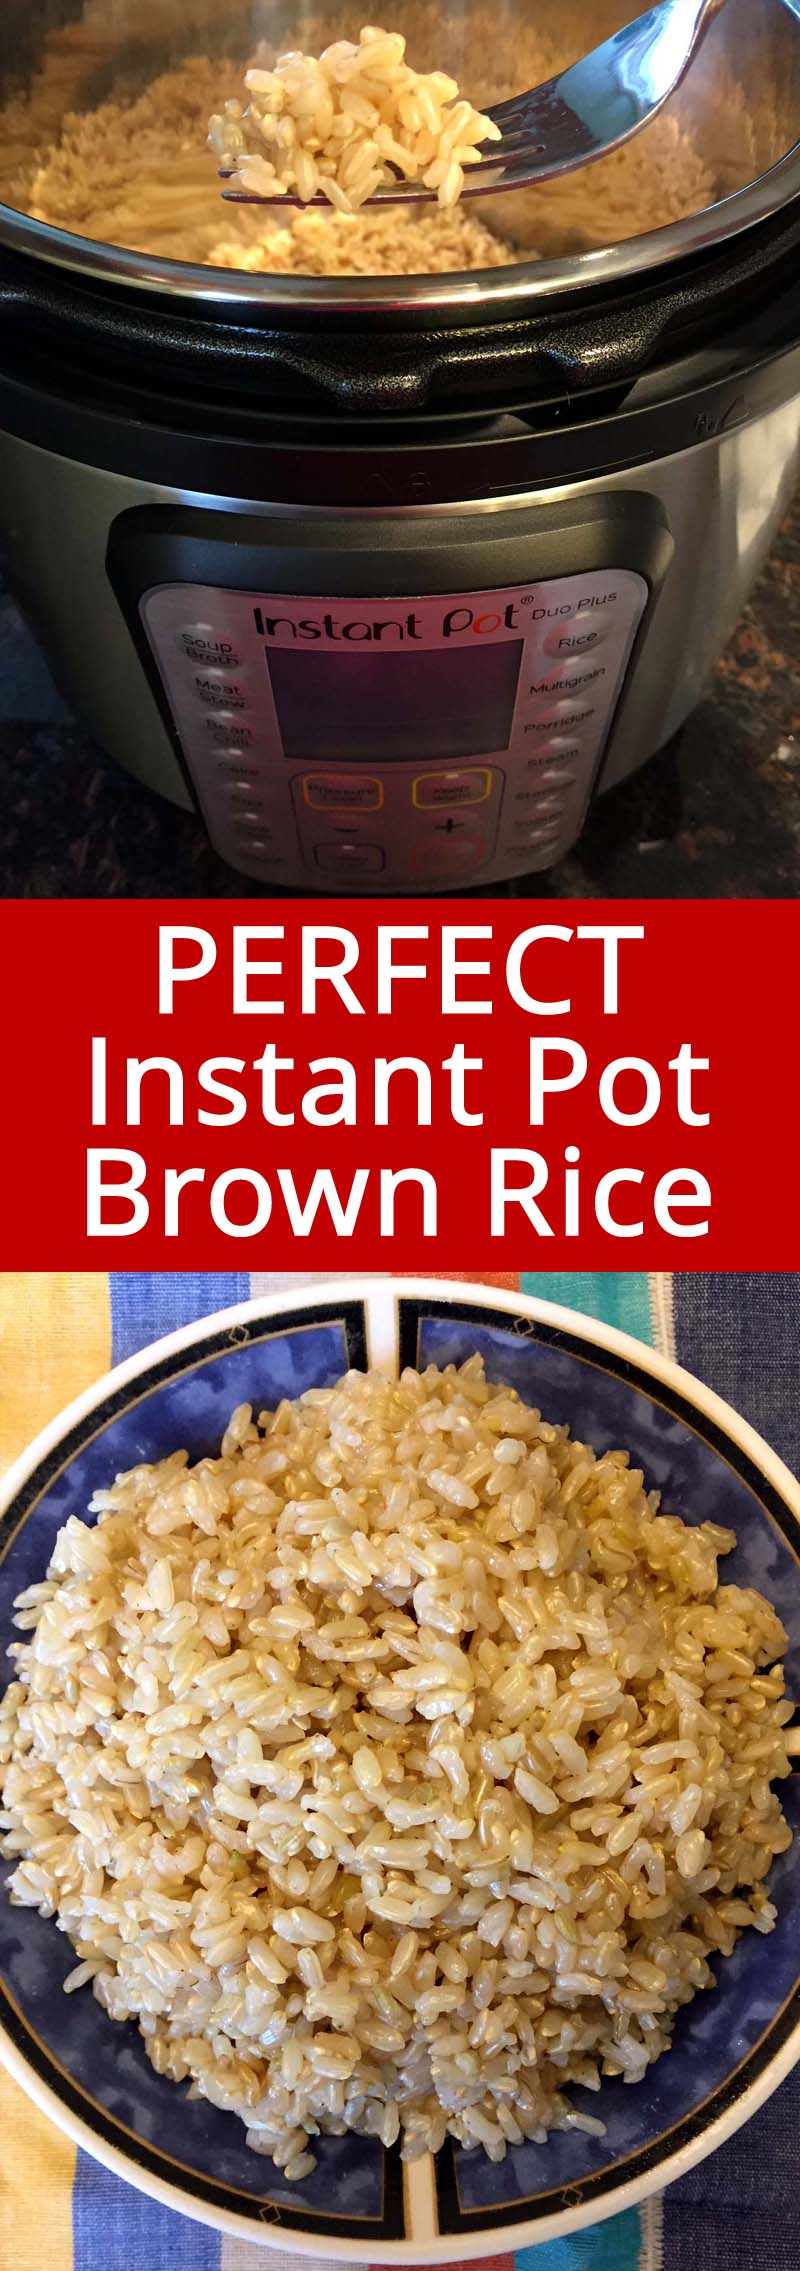 minute brown rice microwave instructions